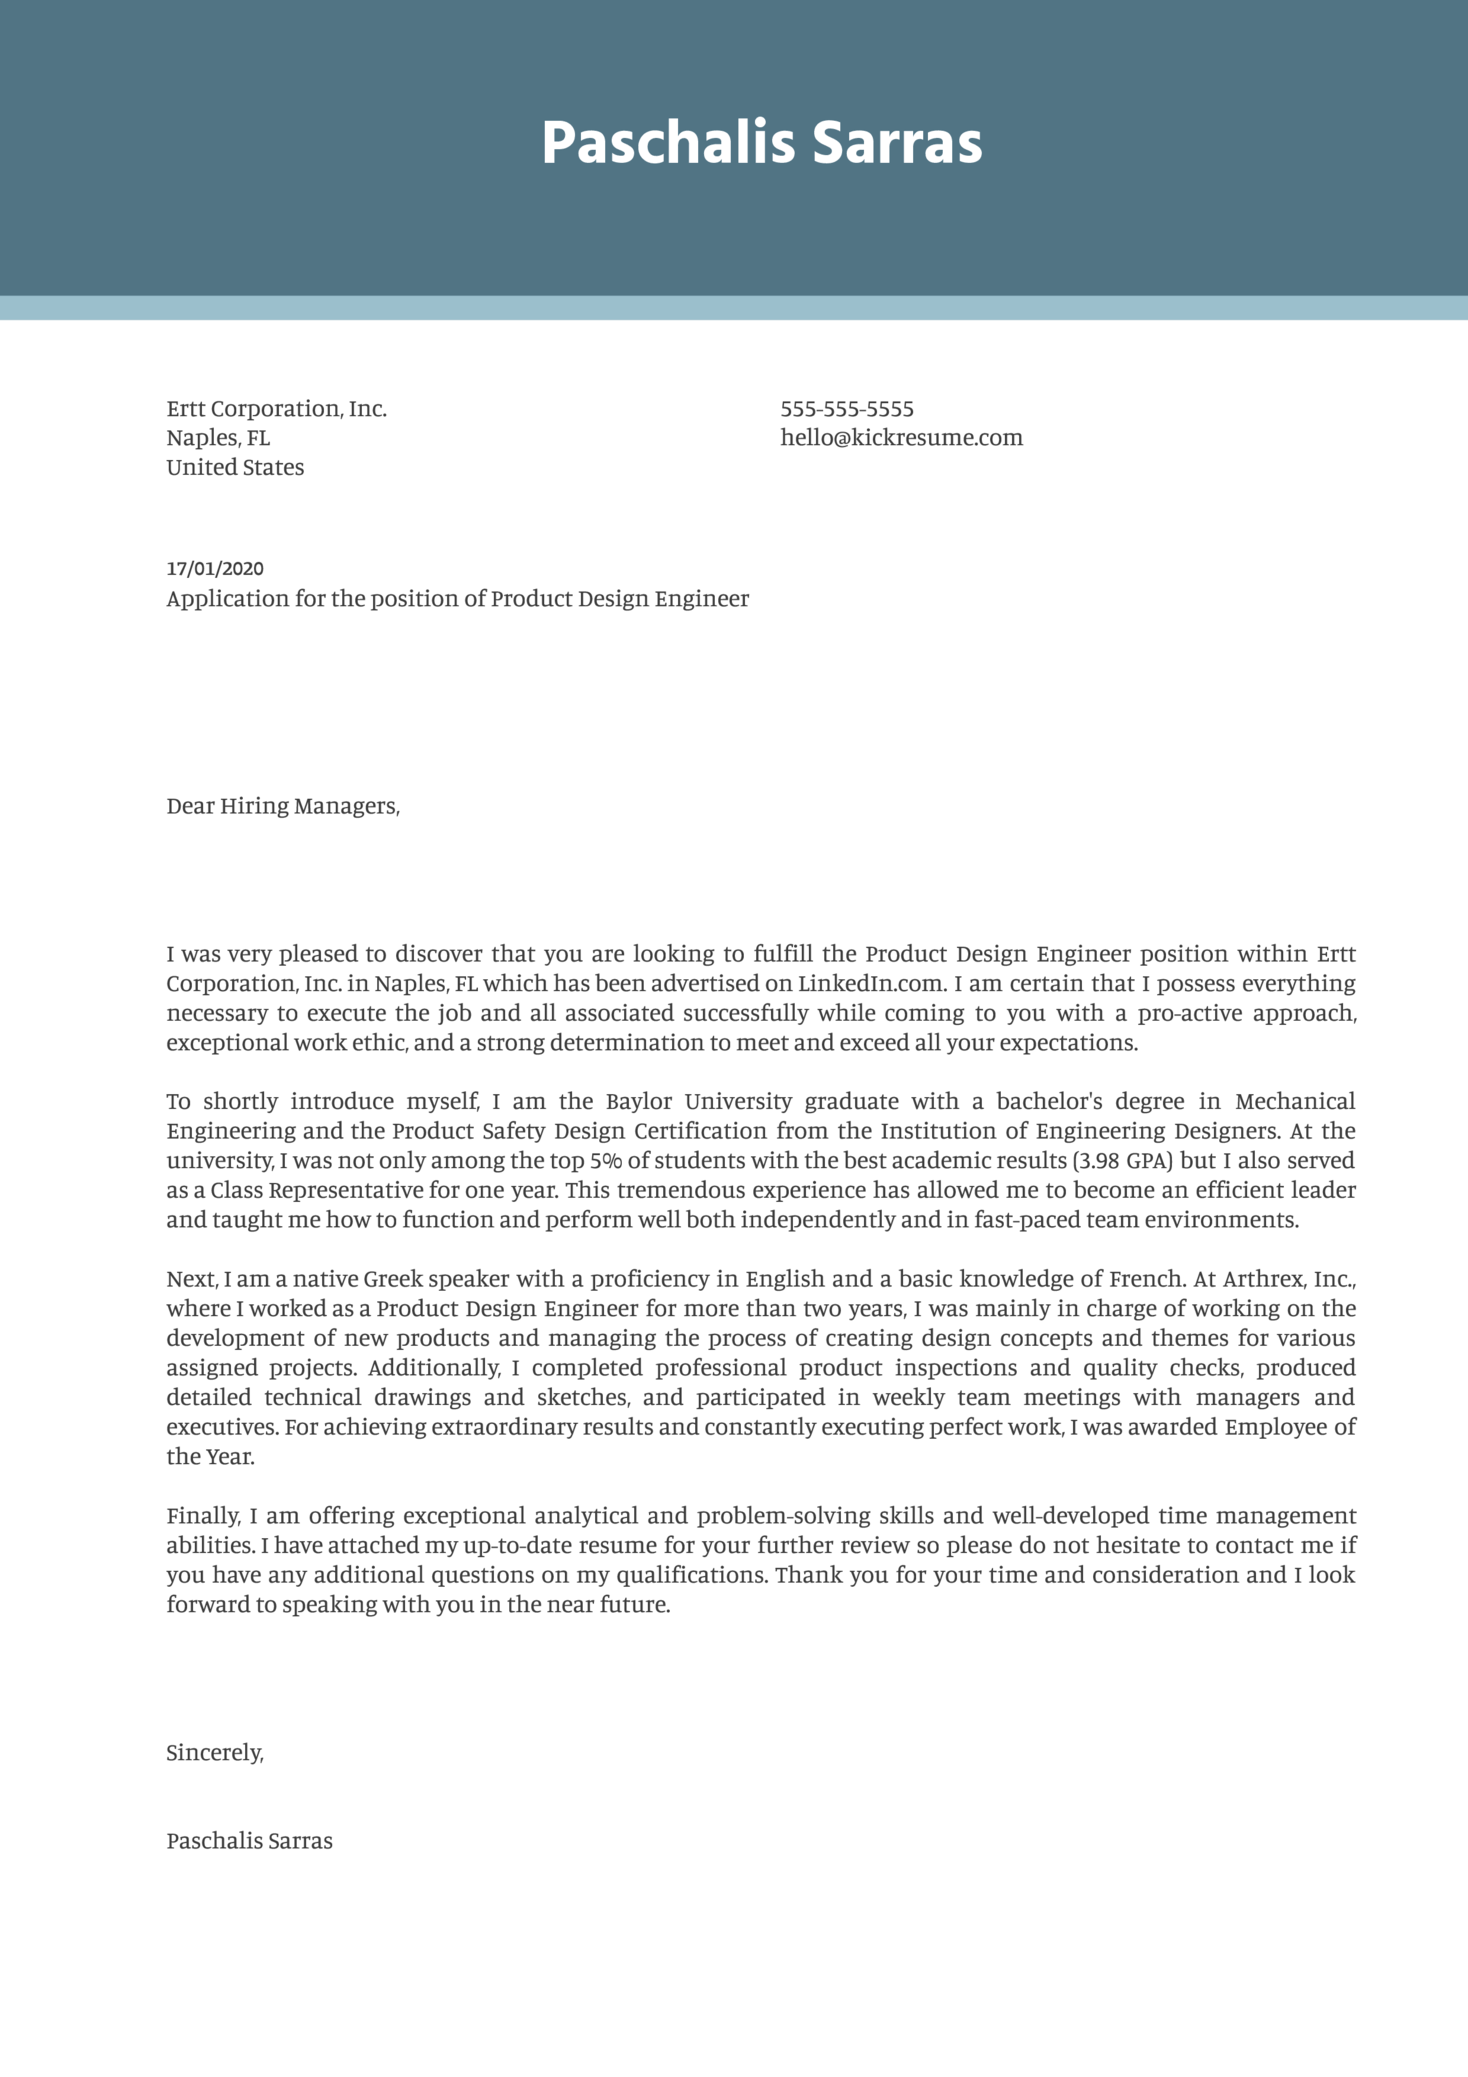 Product Design Engineer Cover Letter Example